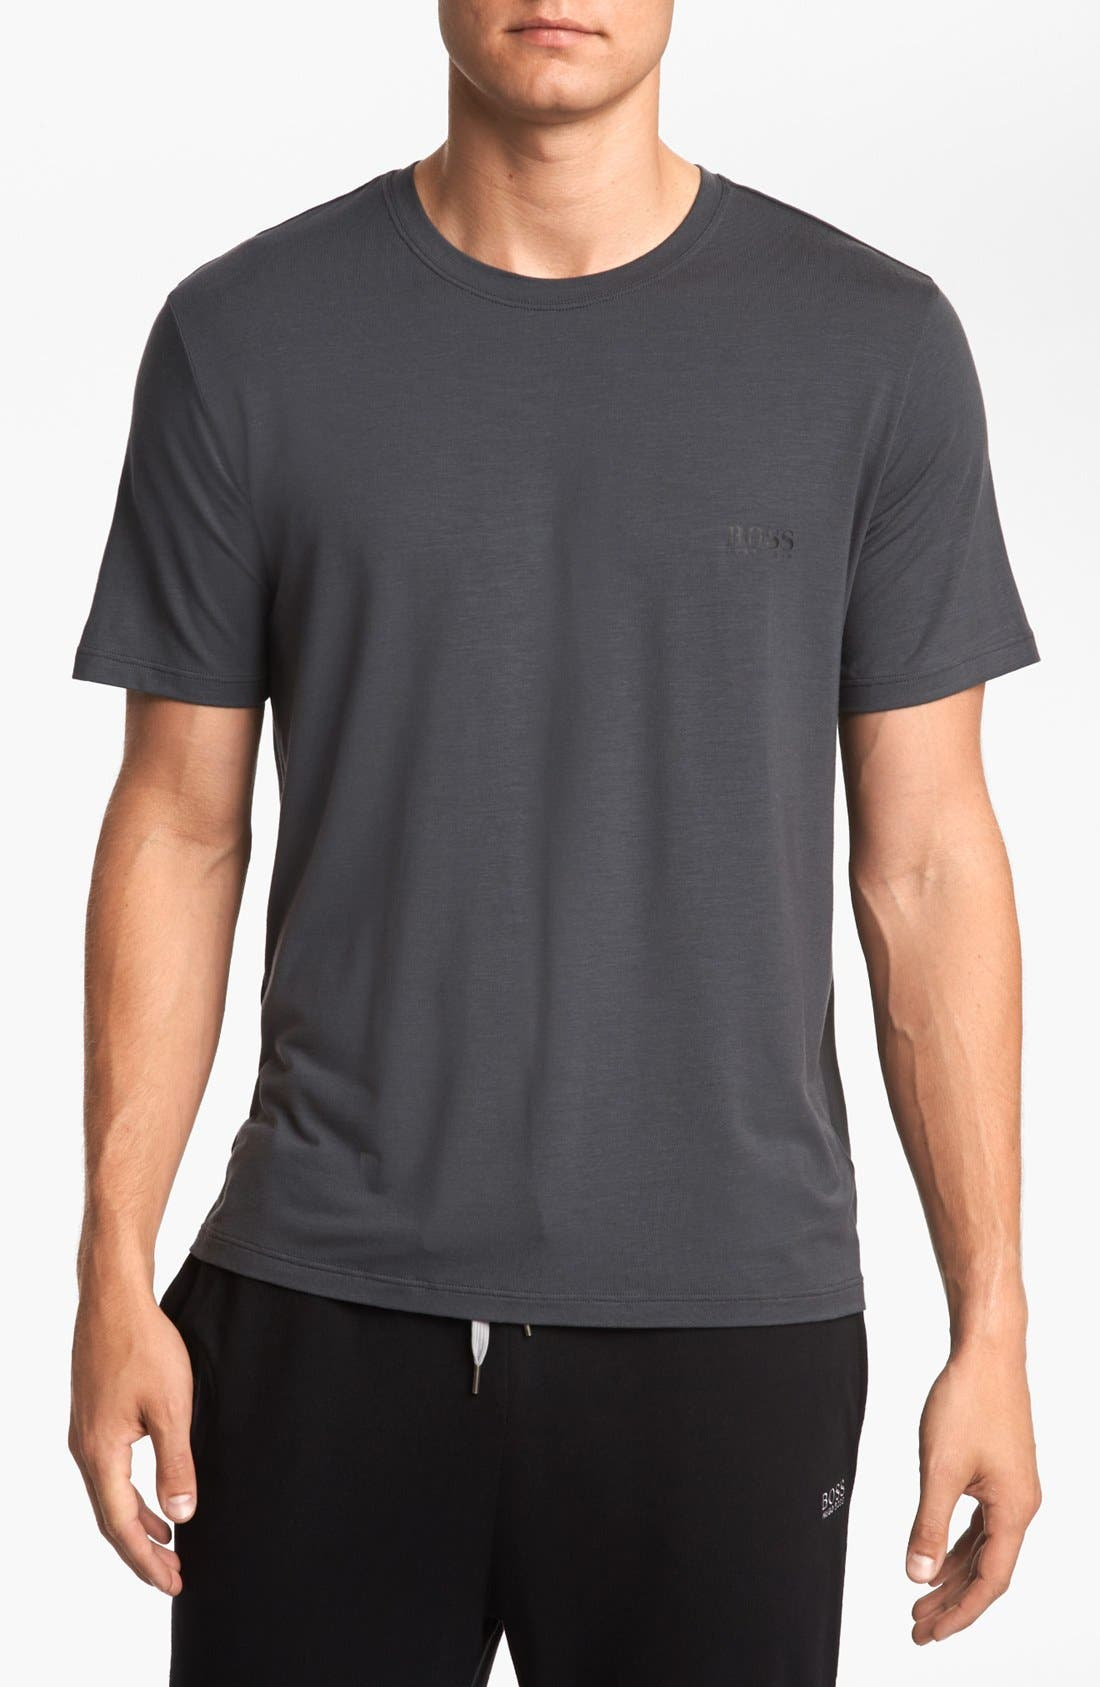 Alternate Image 1 Selected - BOSS HUGO BOSS 'Innovation 2' Short Sleeve T-Shirt